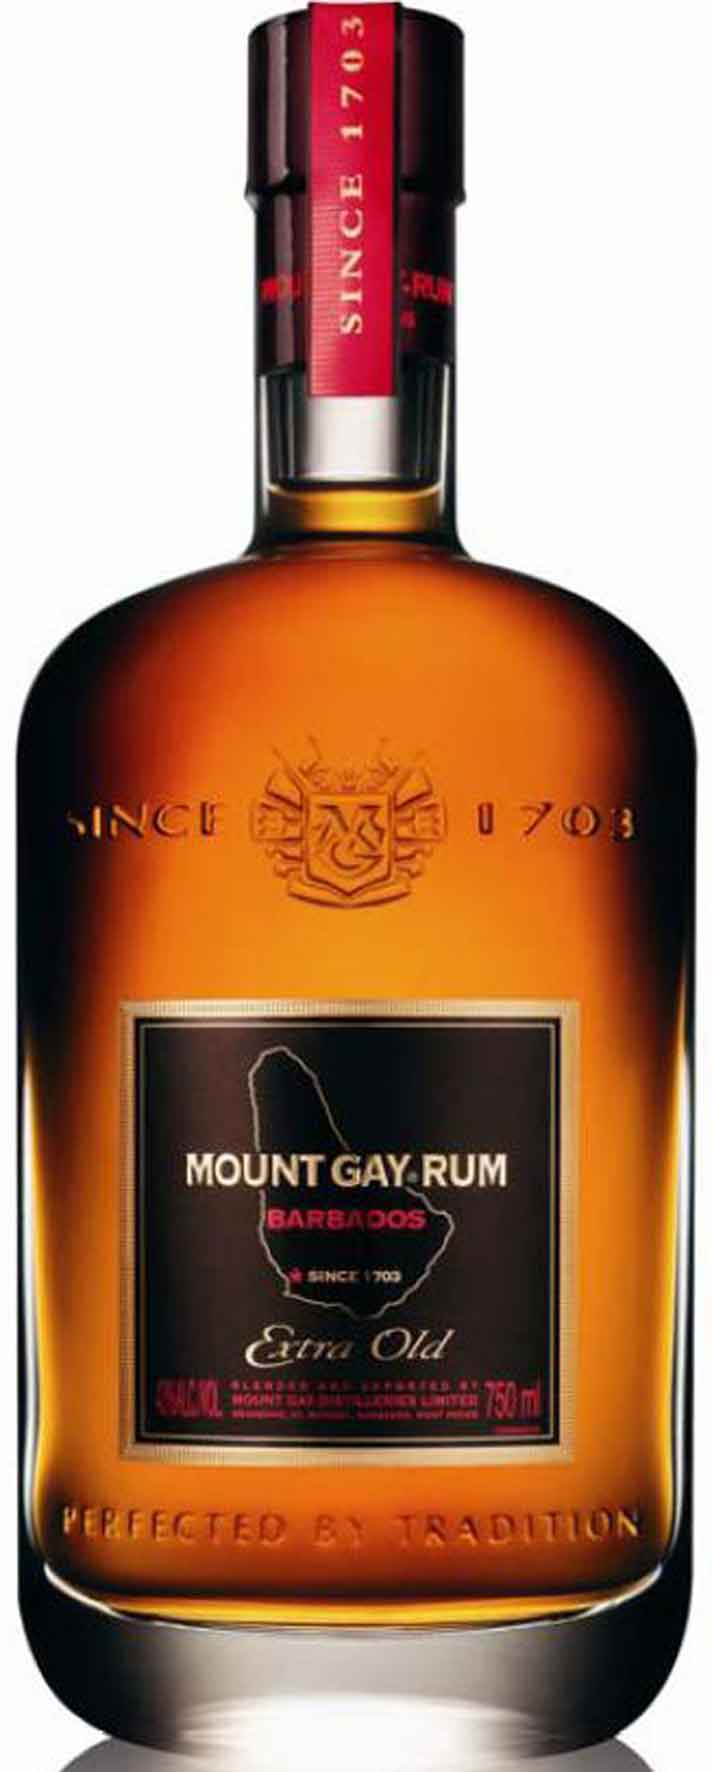 from Dominick mount gay rum bar mat